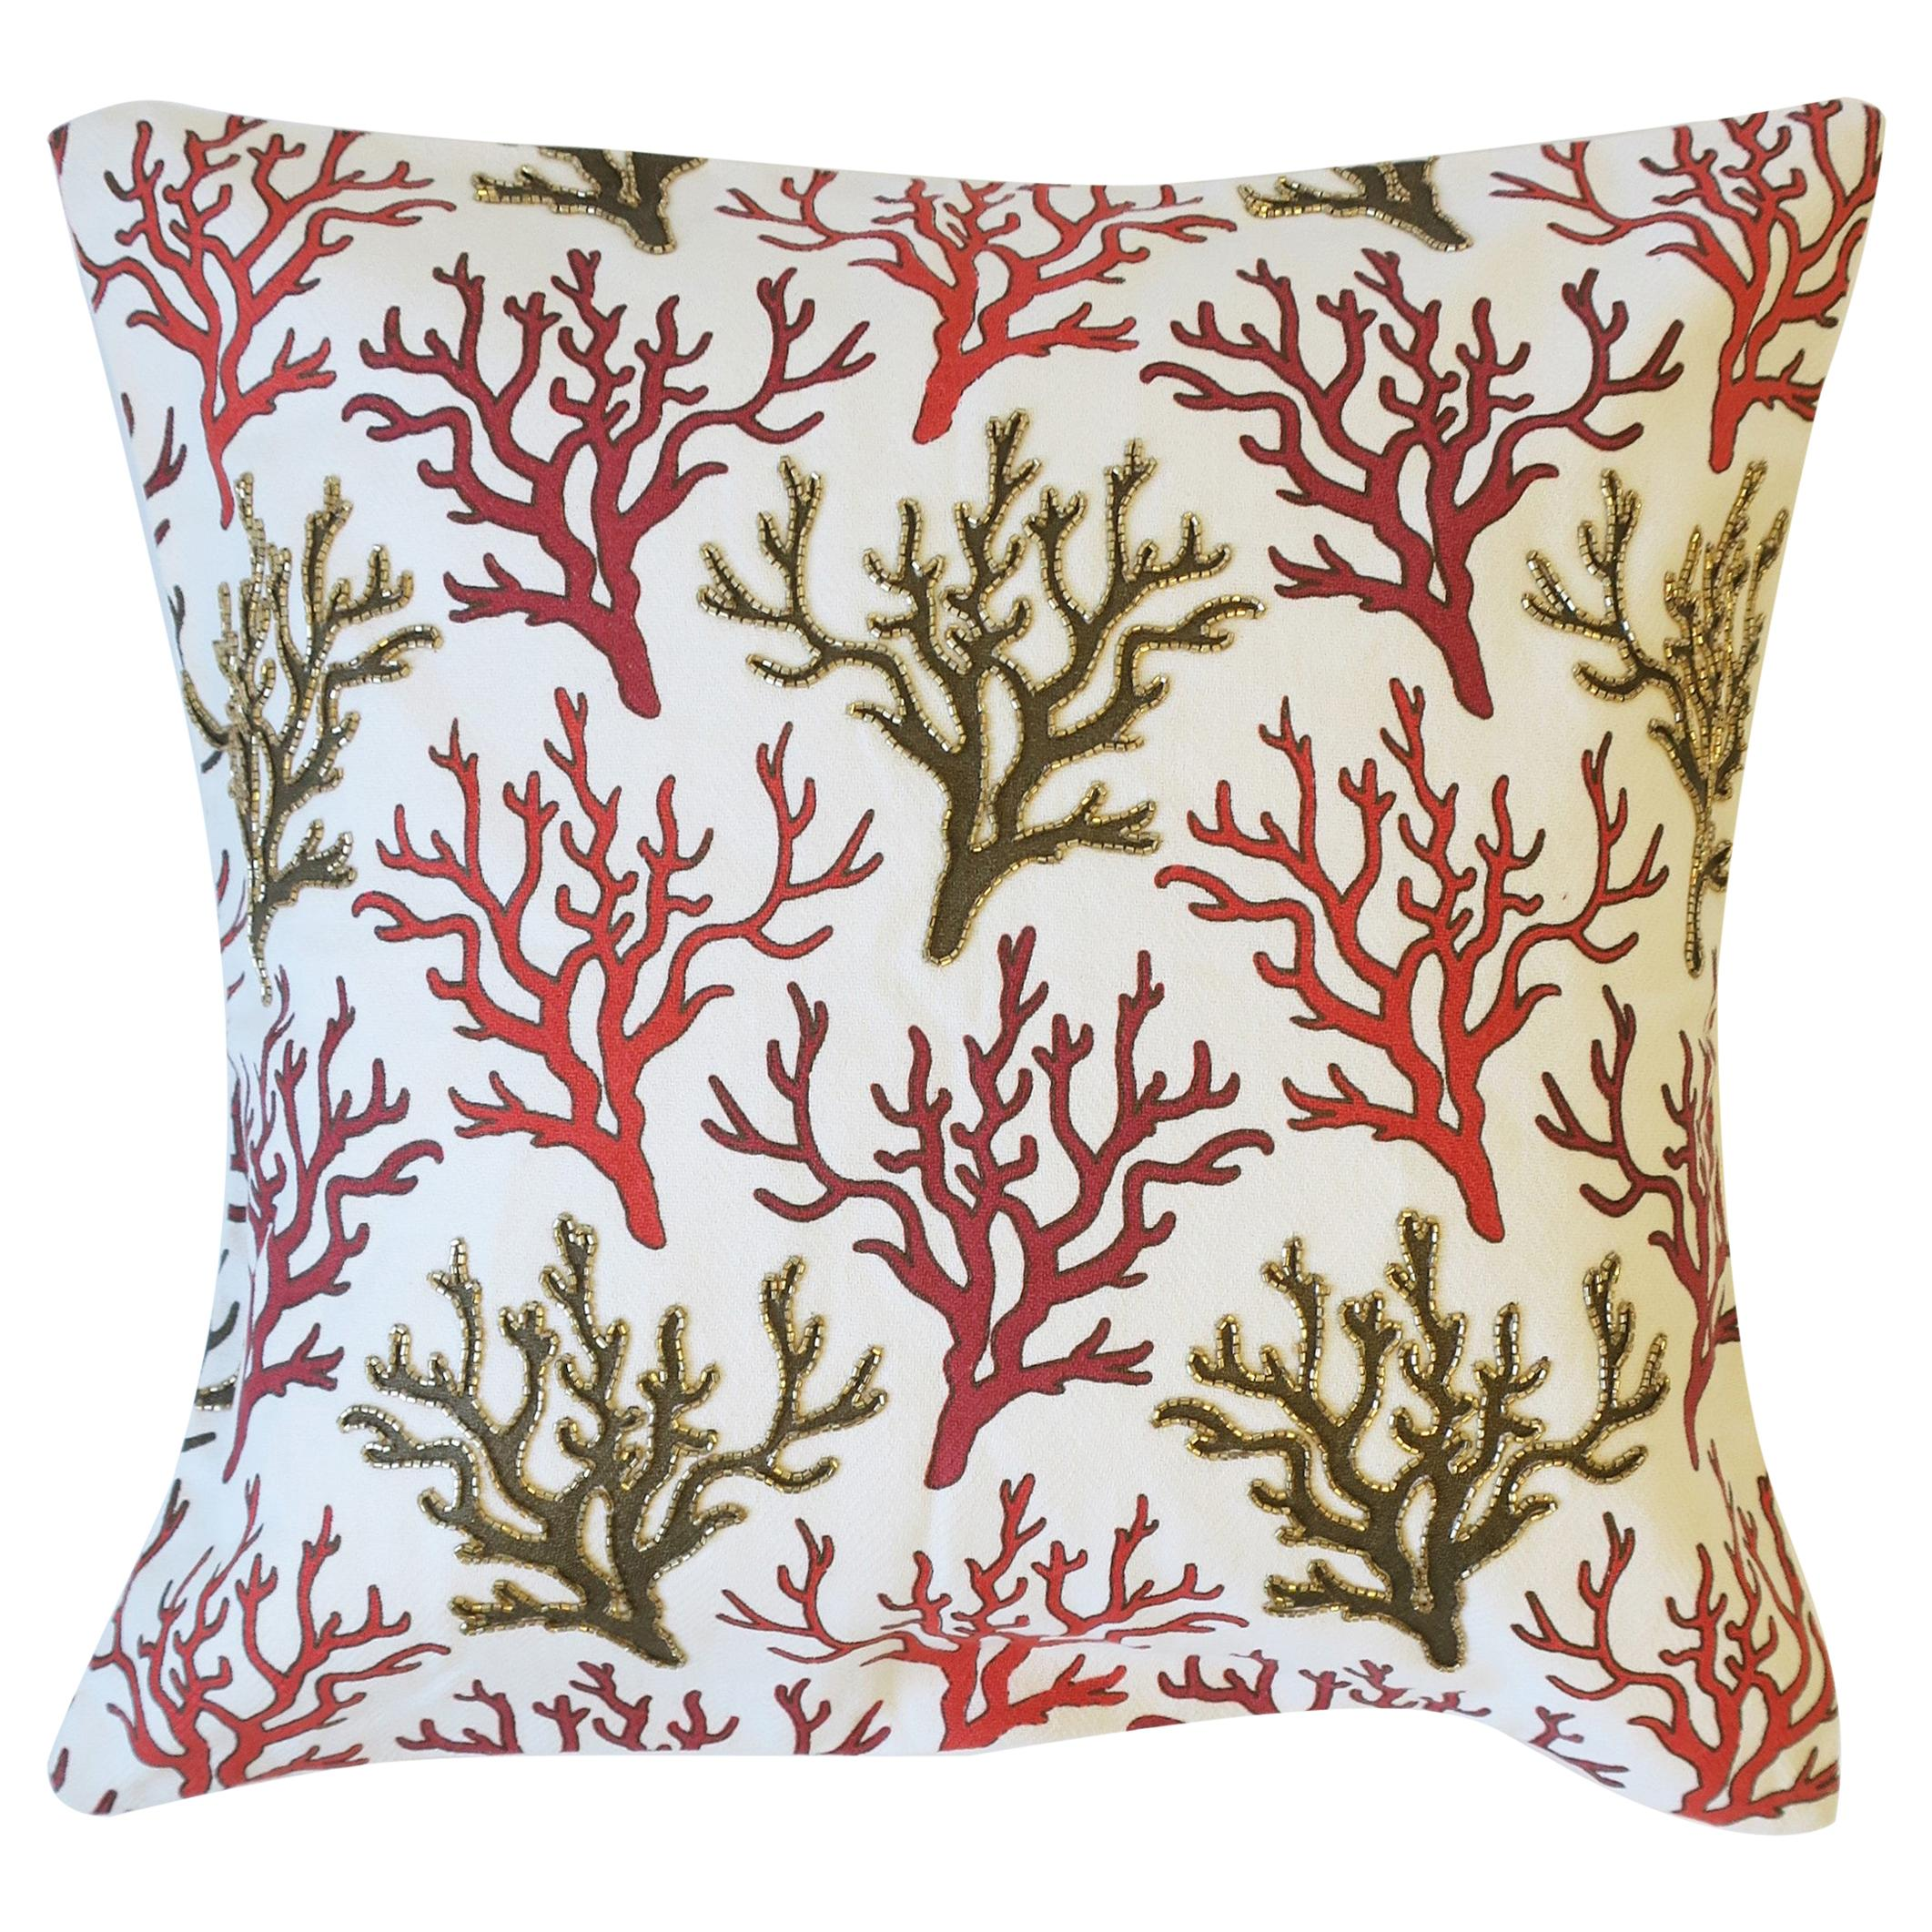 Throw Pillow with Red Sea Coral Design